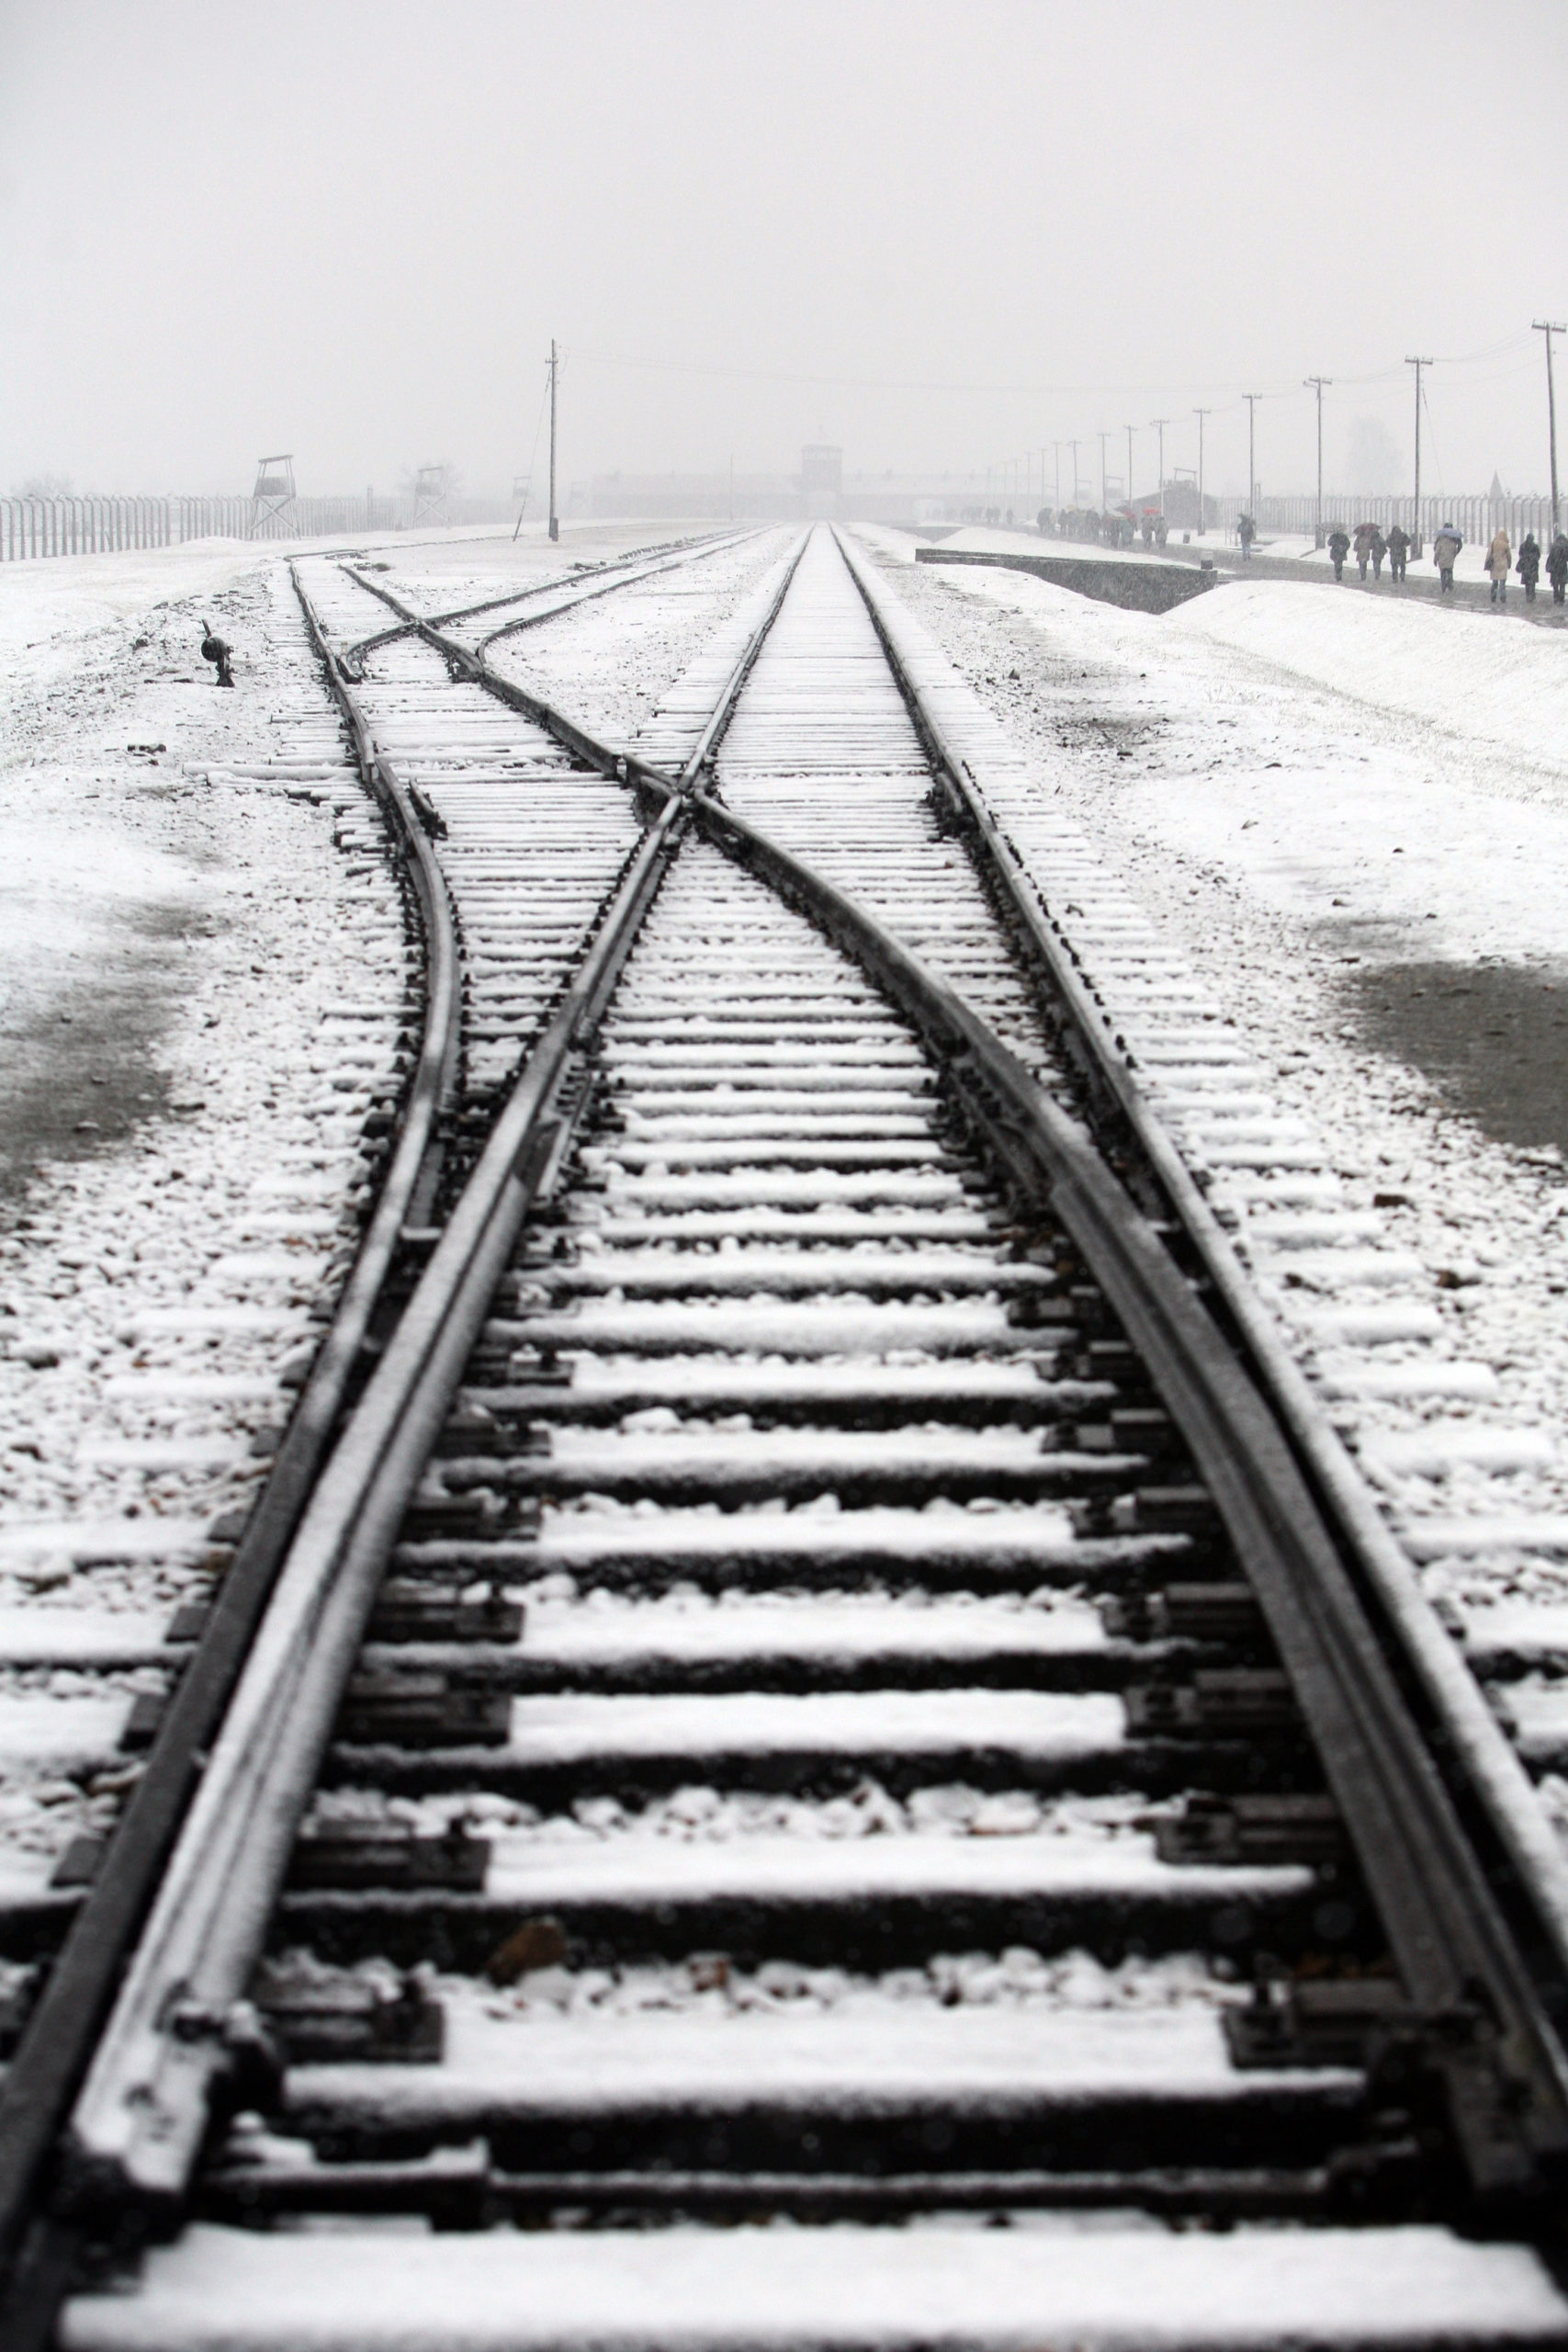 Photo of snow-covered rails of Auschwitz-Birkenau taken by Jaroslaw Praszkiewicz.